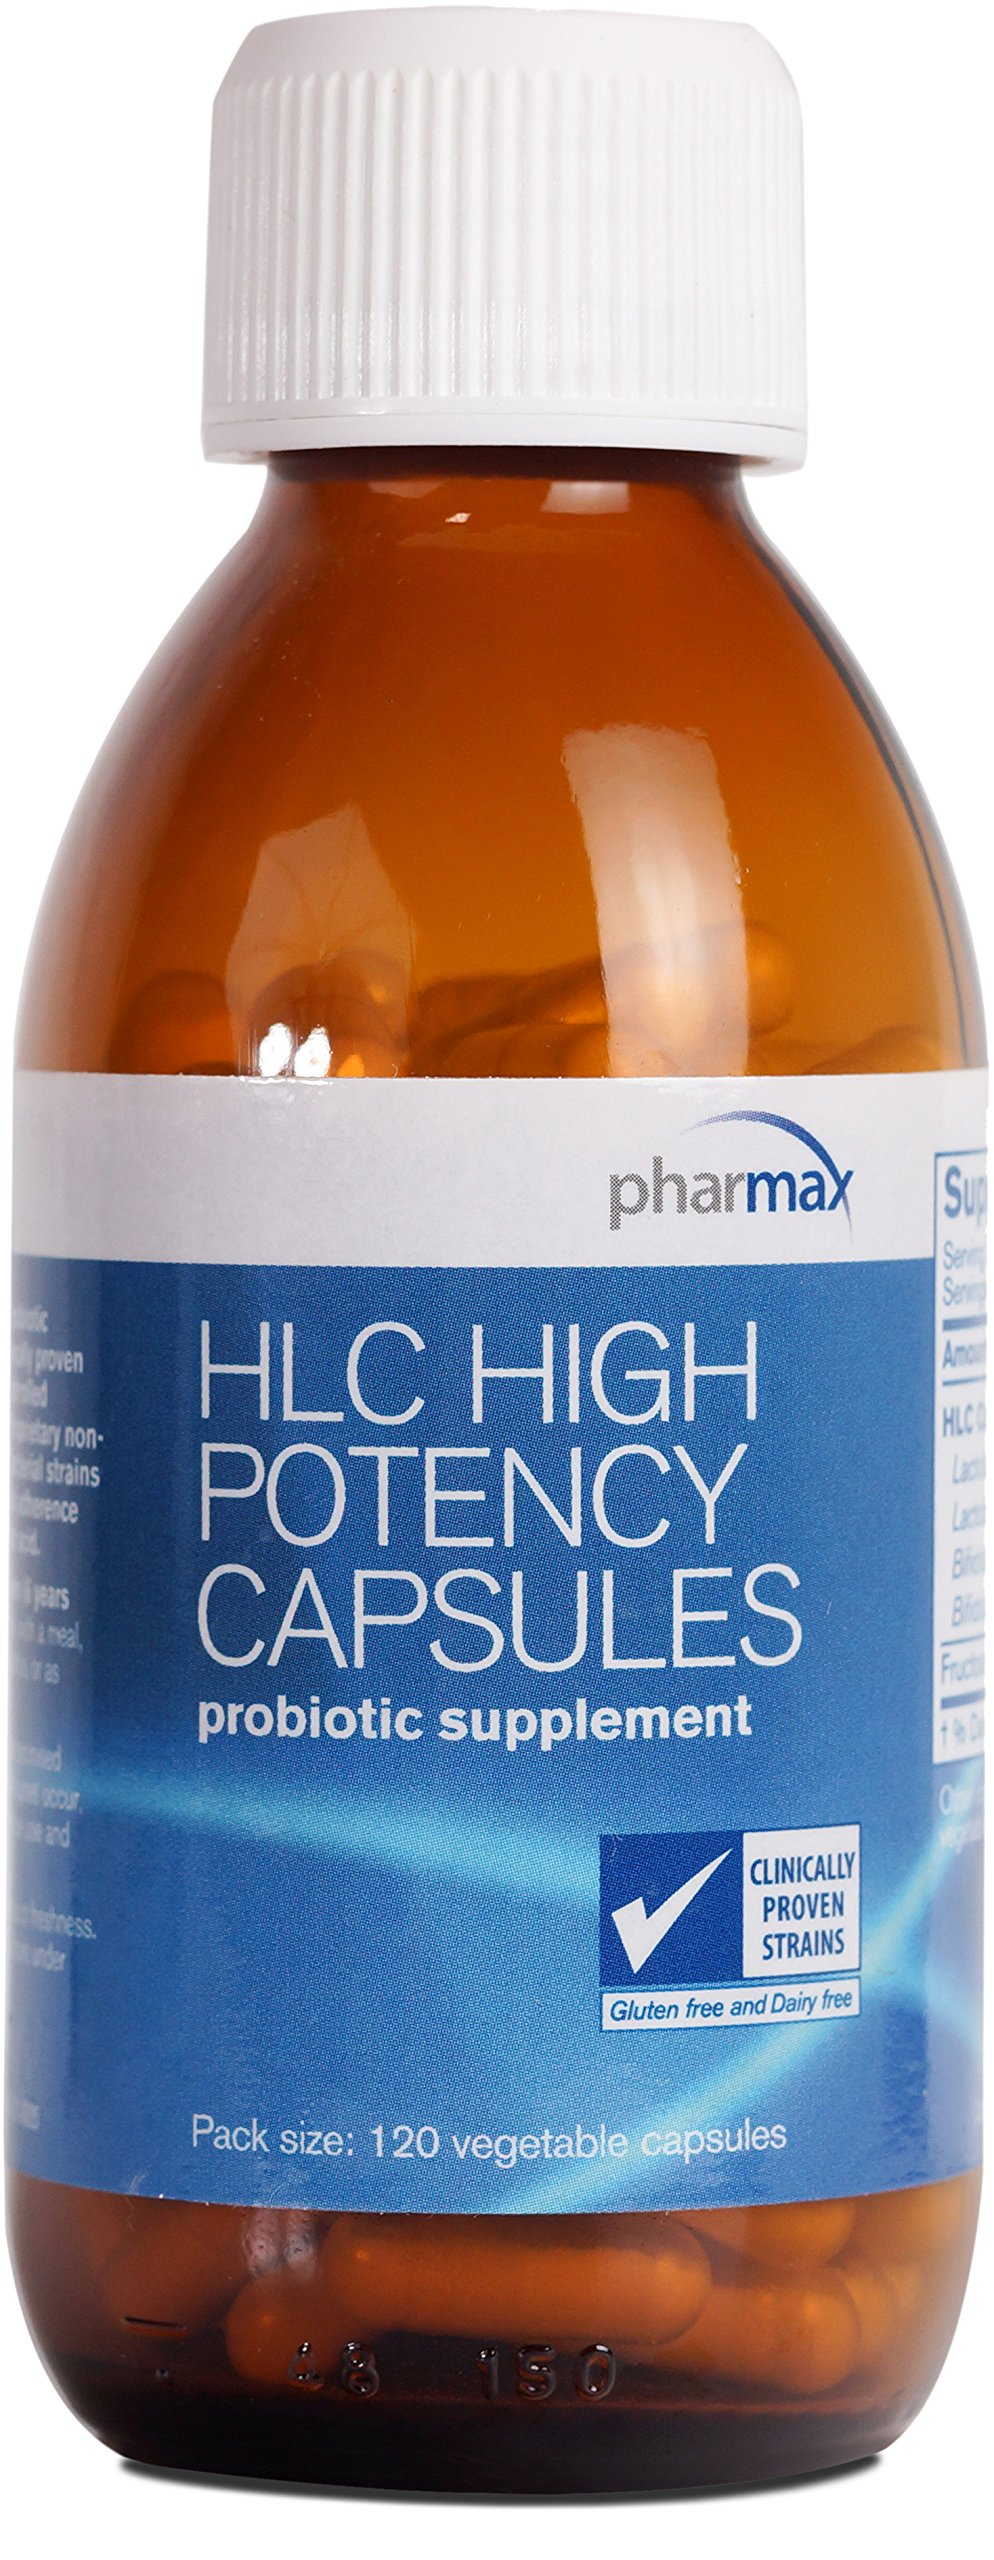 Pharmax - HLC High Potency Capsules - Probiotics to Promote Gastrointestinal Health in Adults and Children* - 120 Capsules